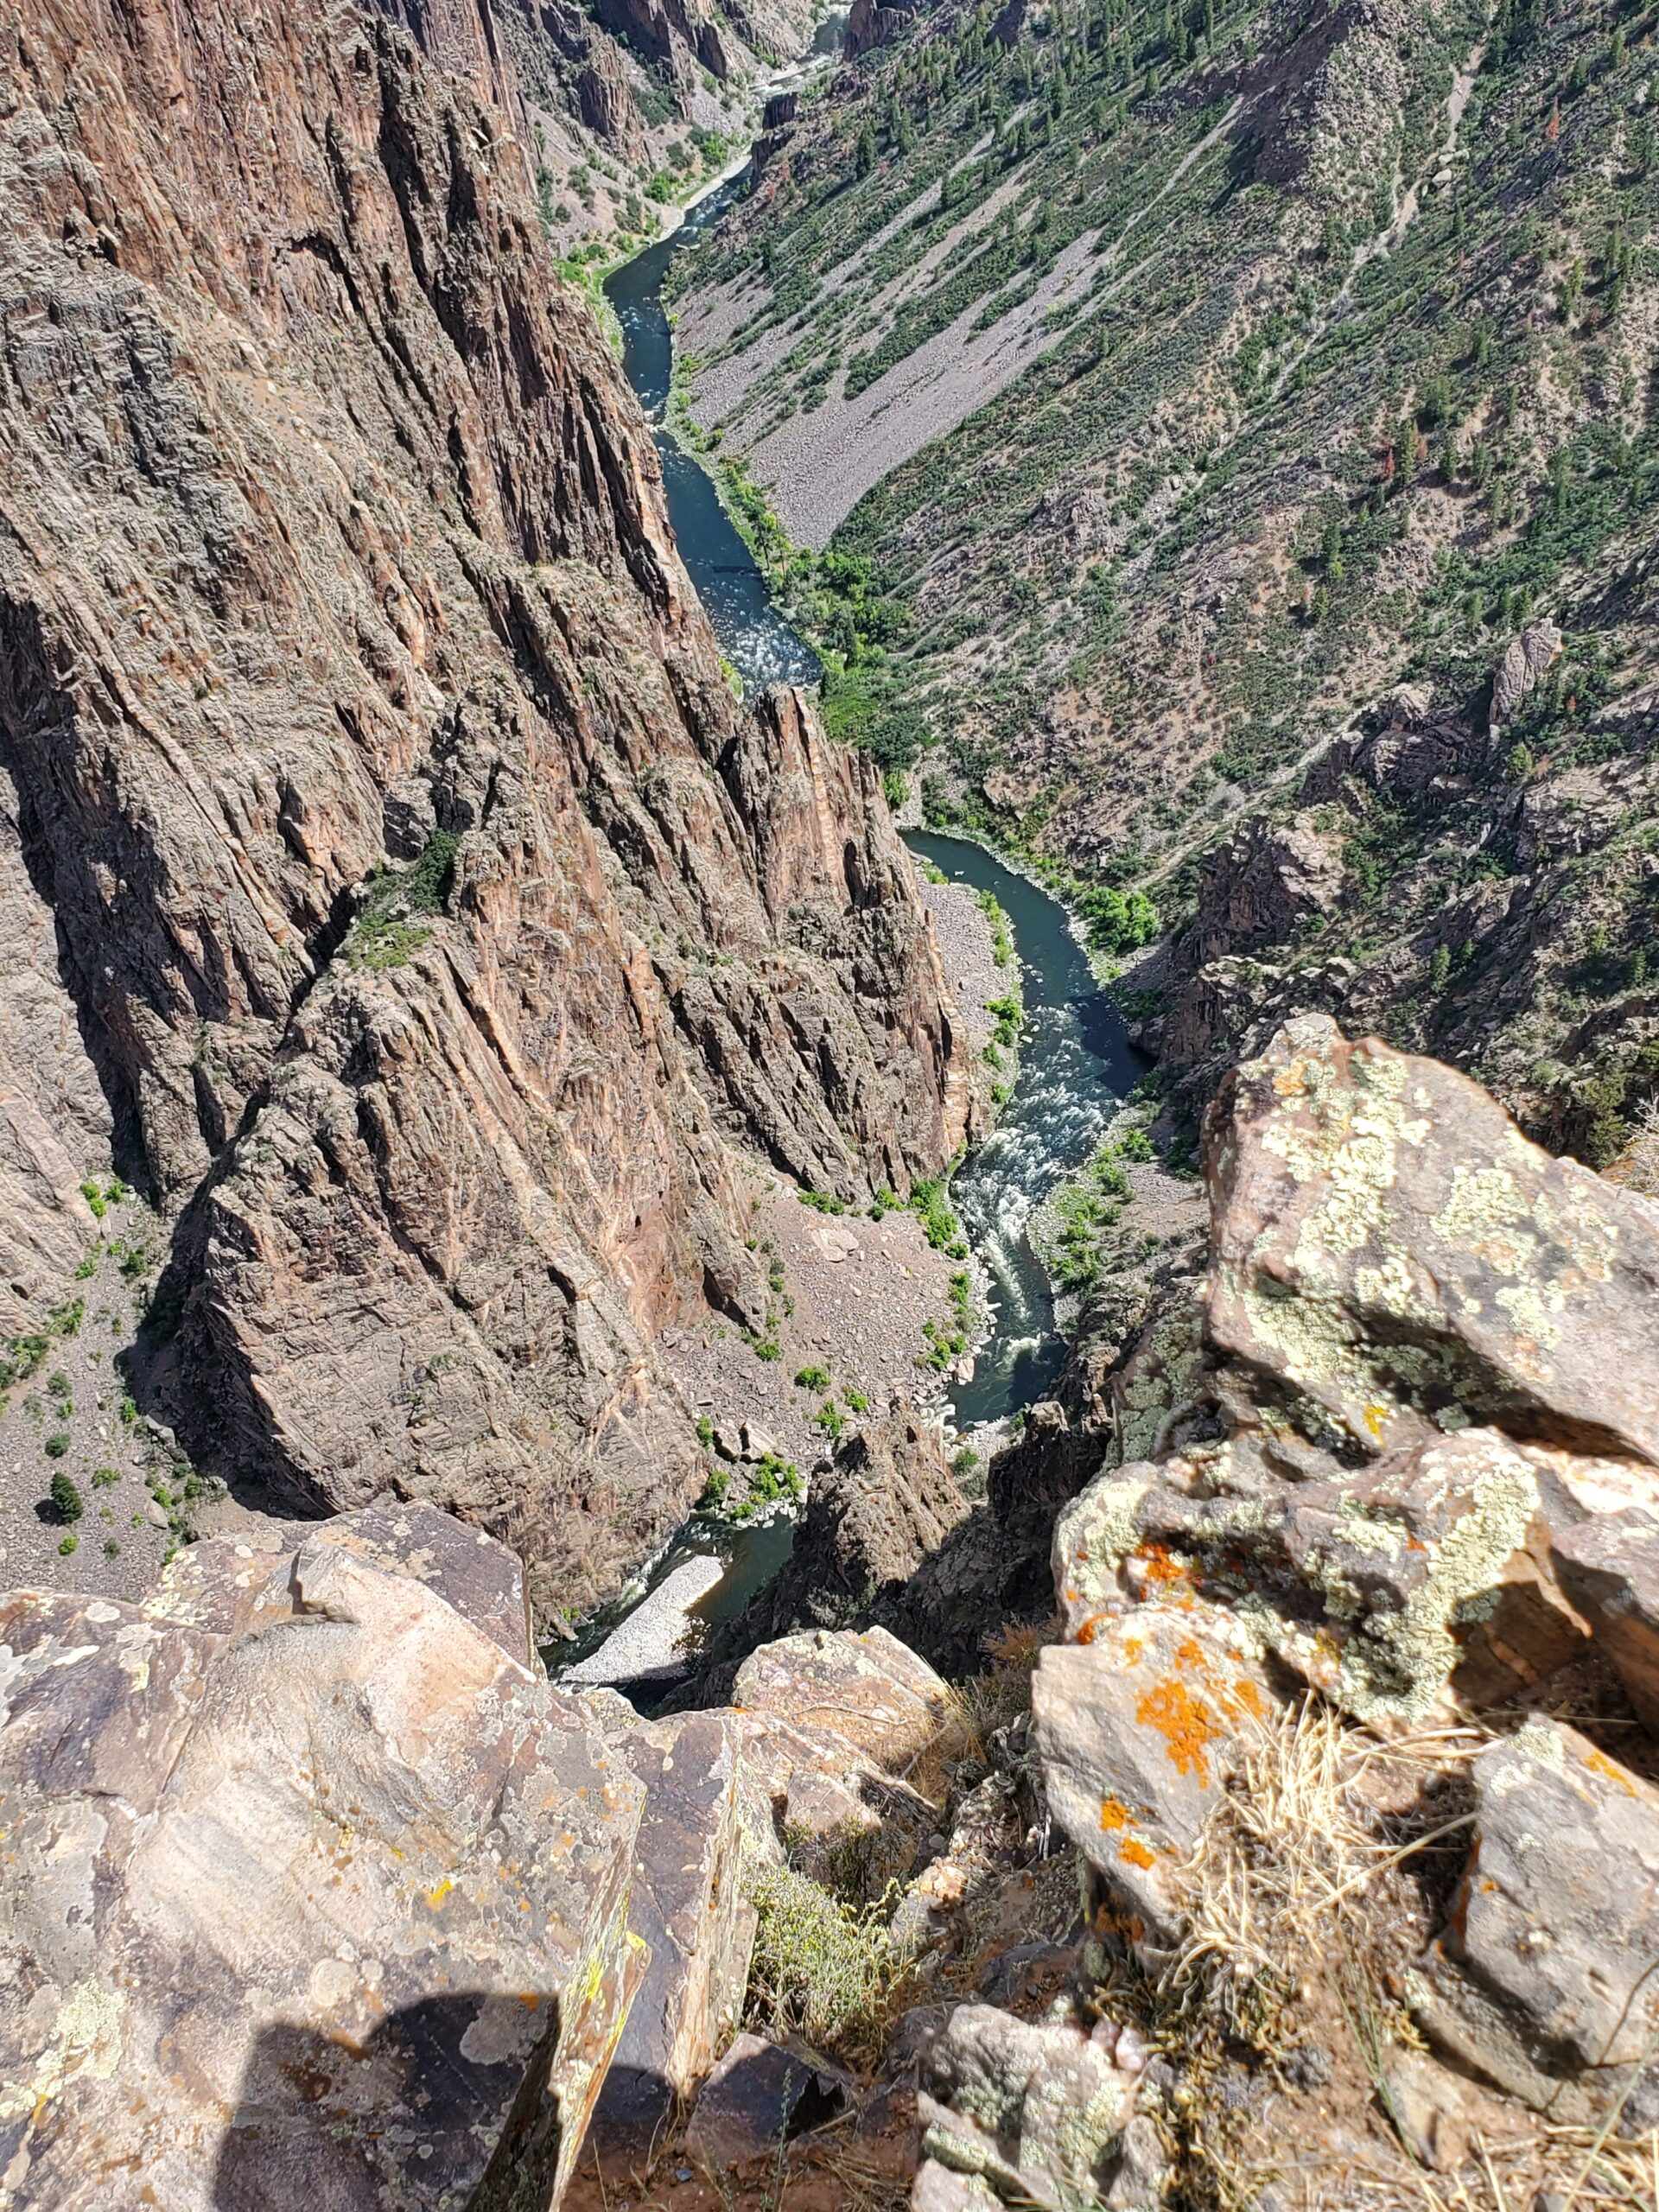 View from Black Canyon of the Gunnison N.P.